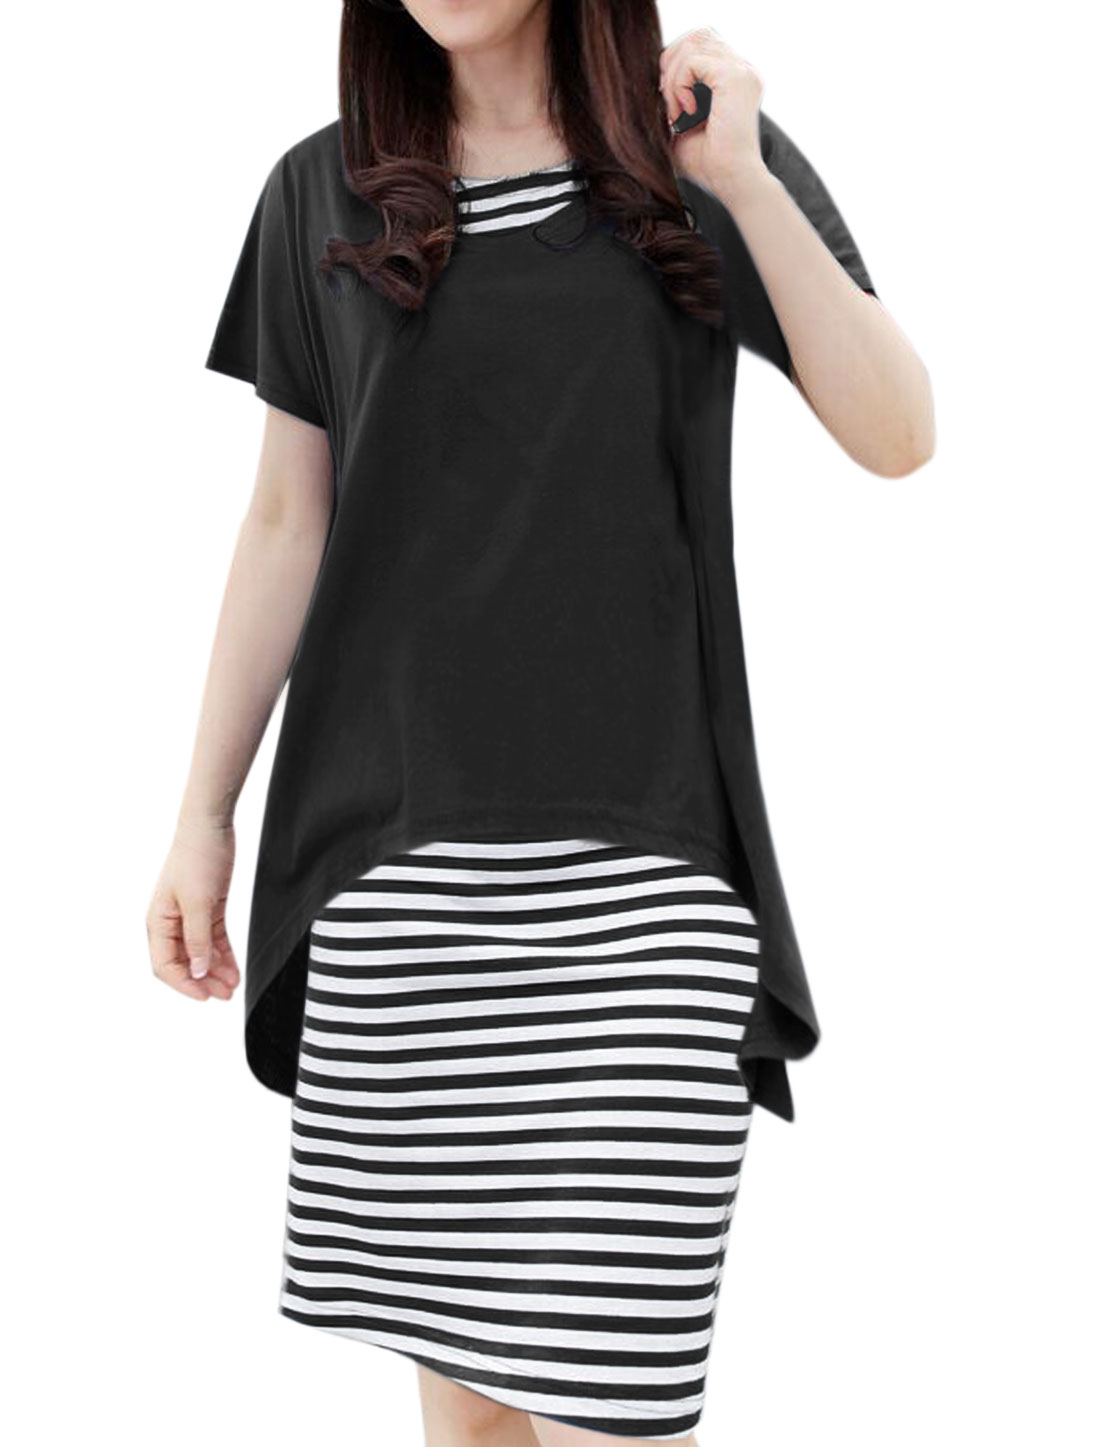 Woman Low High Hem Loose Top w Stripes Midi Dress Sets Black White M